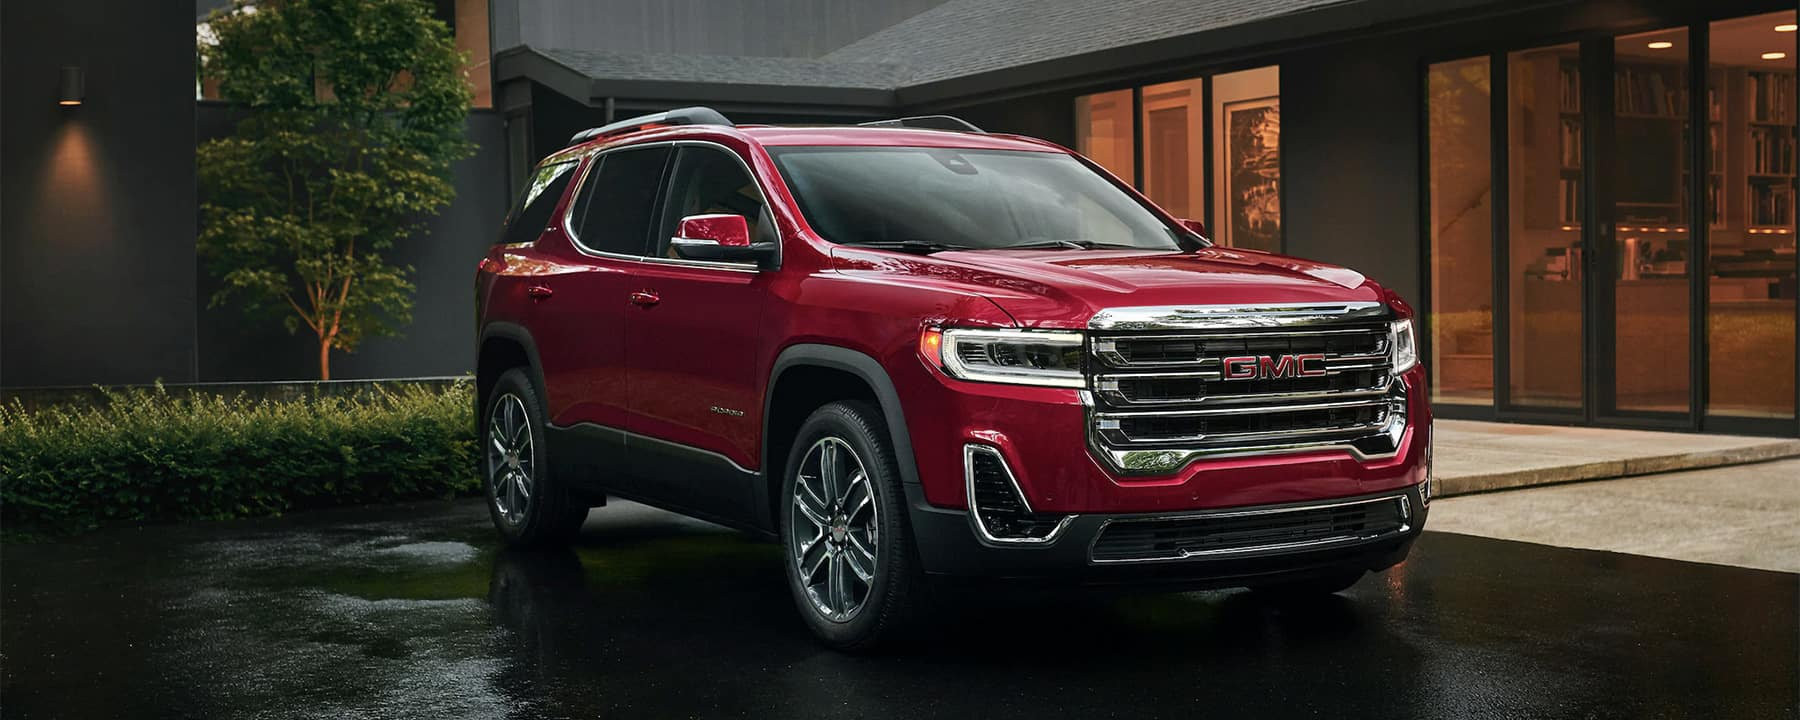 2021 gmc acadia preview specs and features  2021 best suv